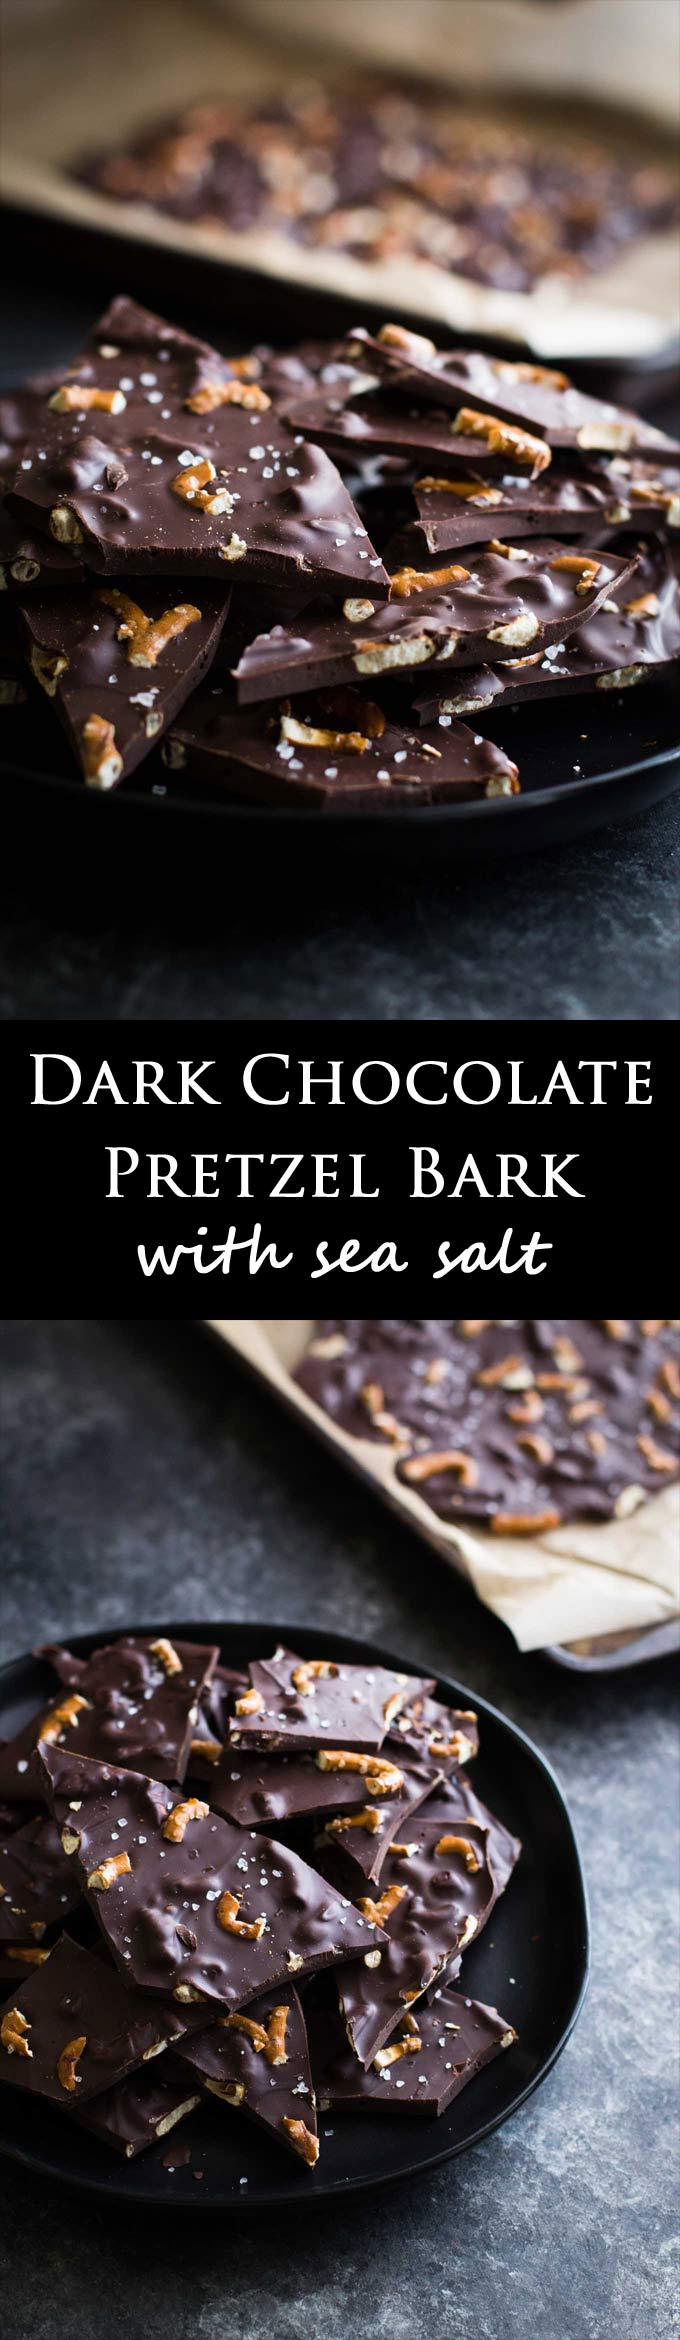 Dark chocolate bark filled with crunchy pretzels and sprinkled with sea salt! A salty sweet snack that is perfect for parties!